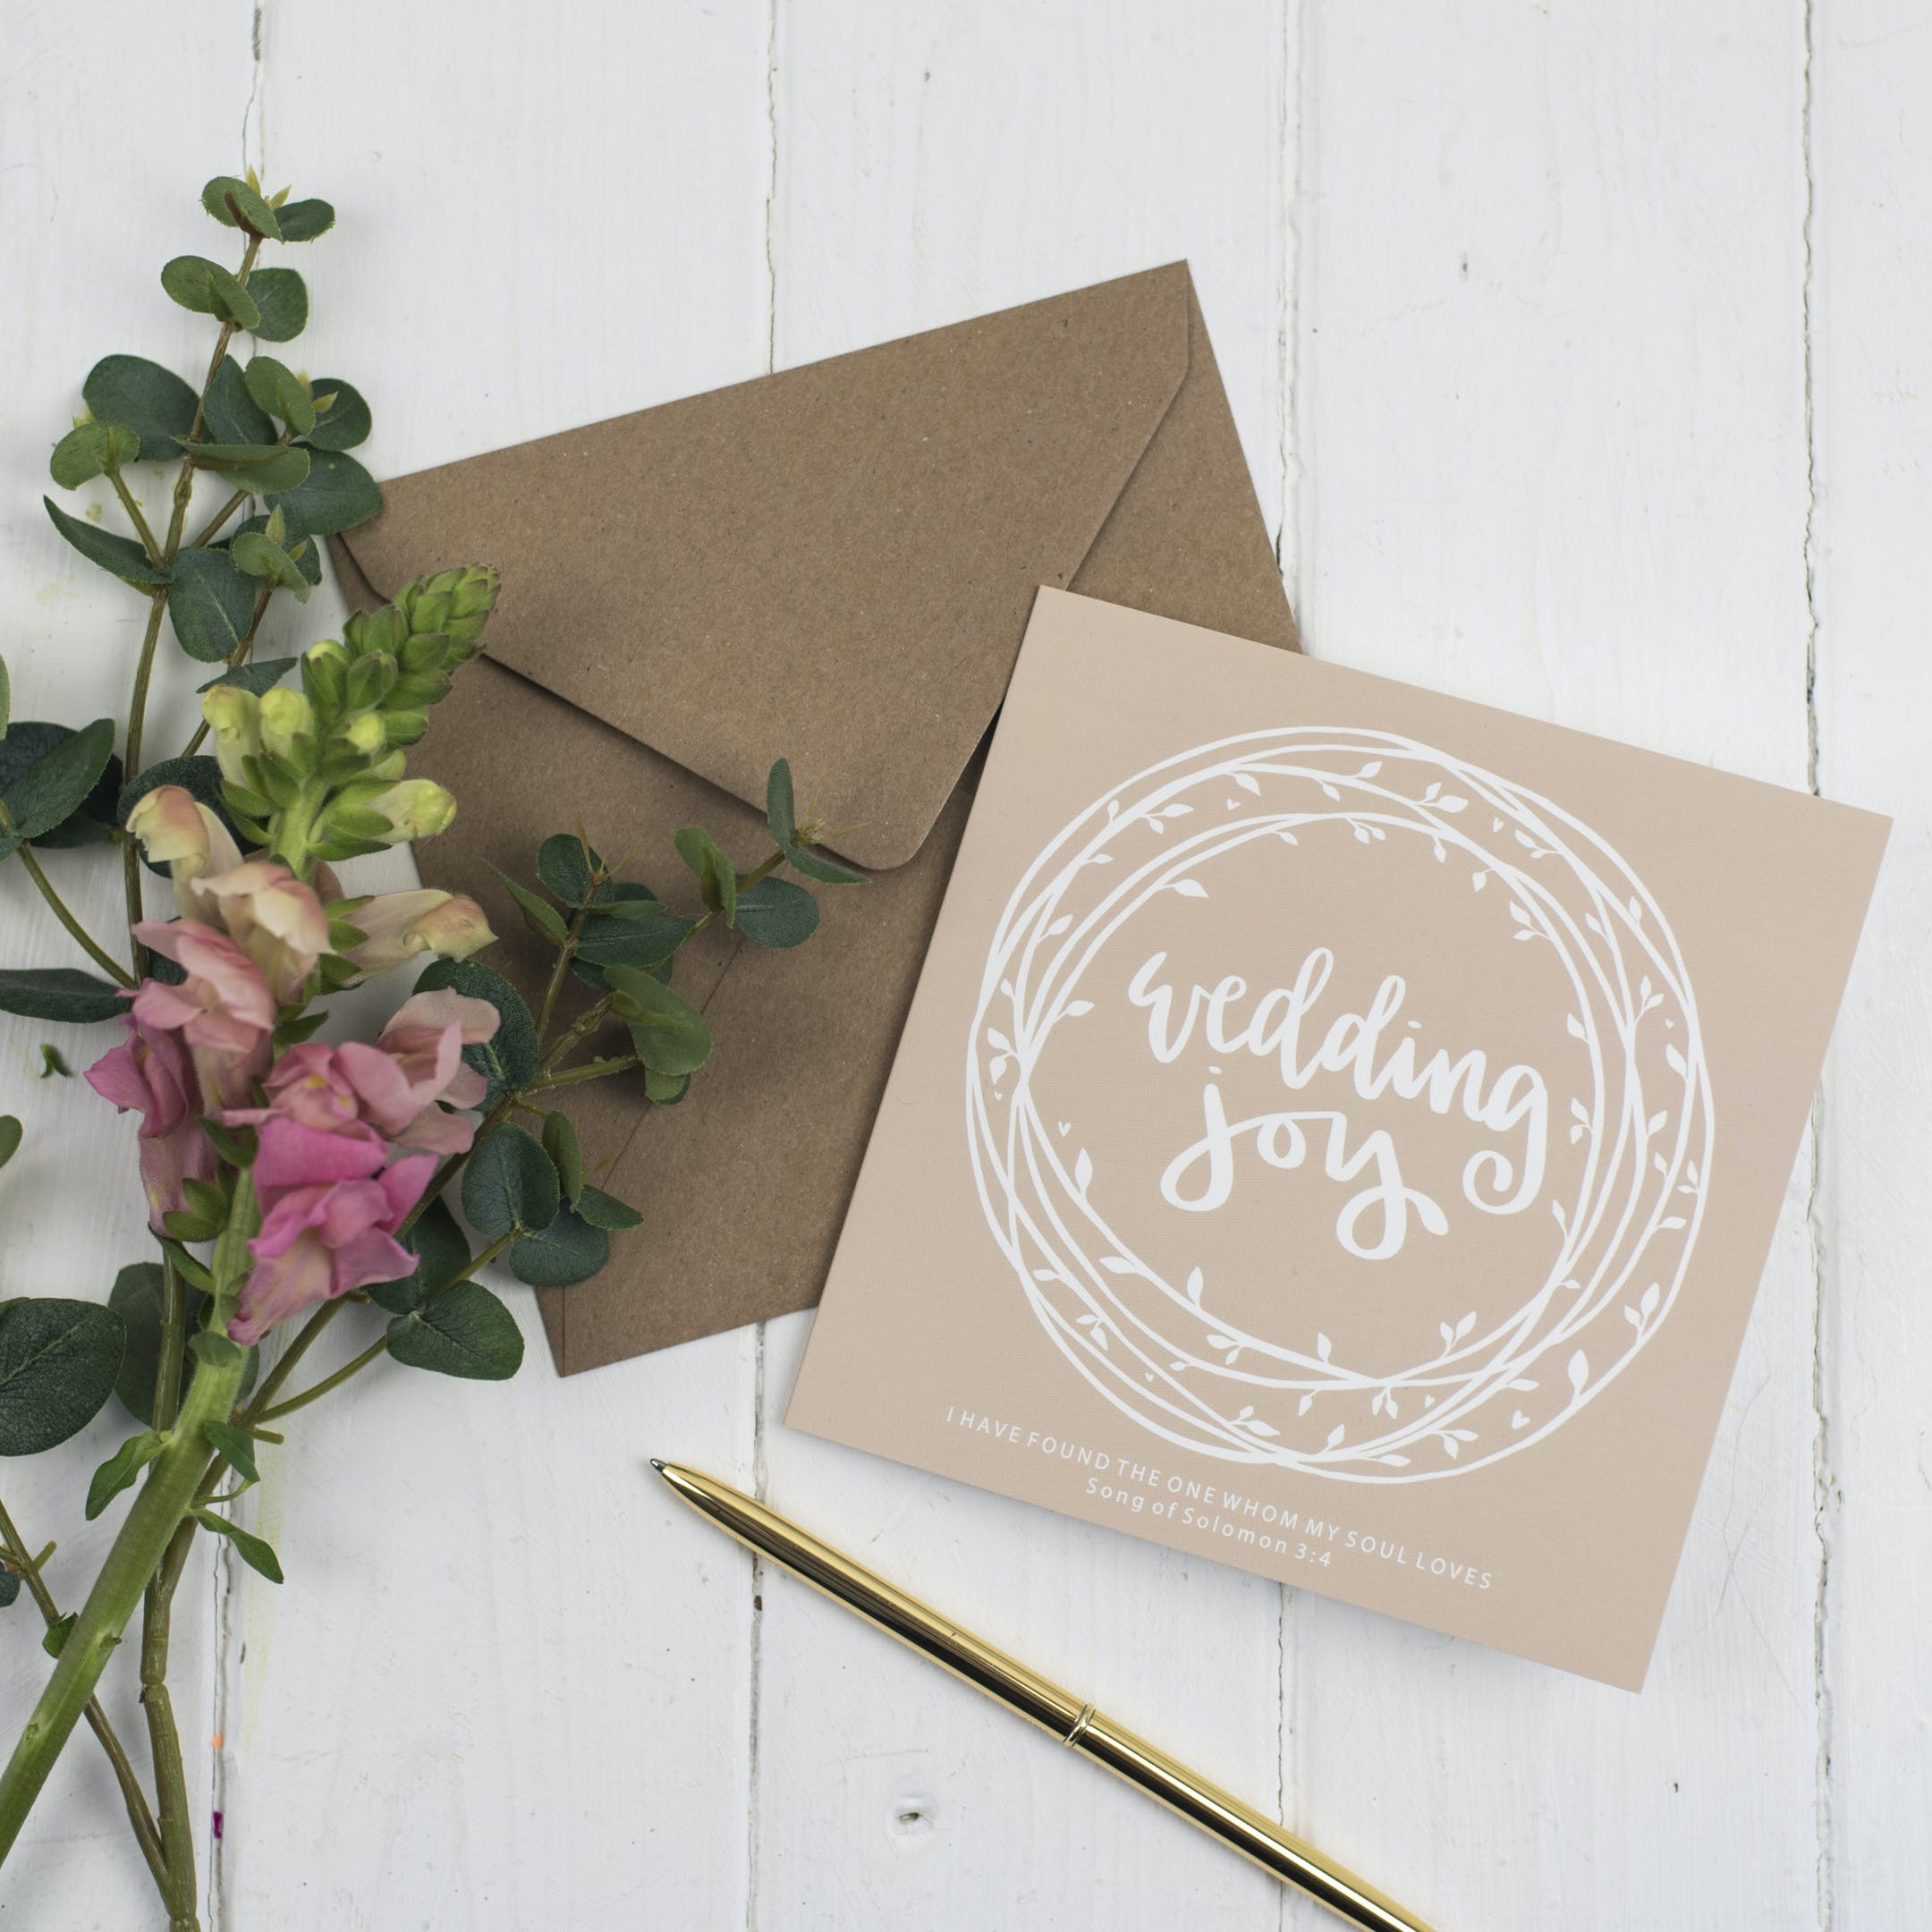 Joy Christian Wedding Cards - Song of Solomon 3:4 - Hope and Ginger   Cheerfully Given